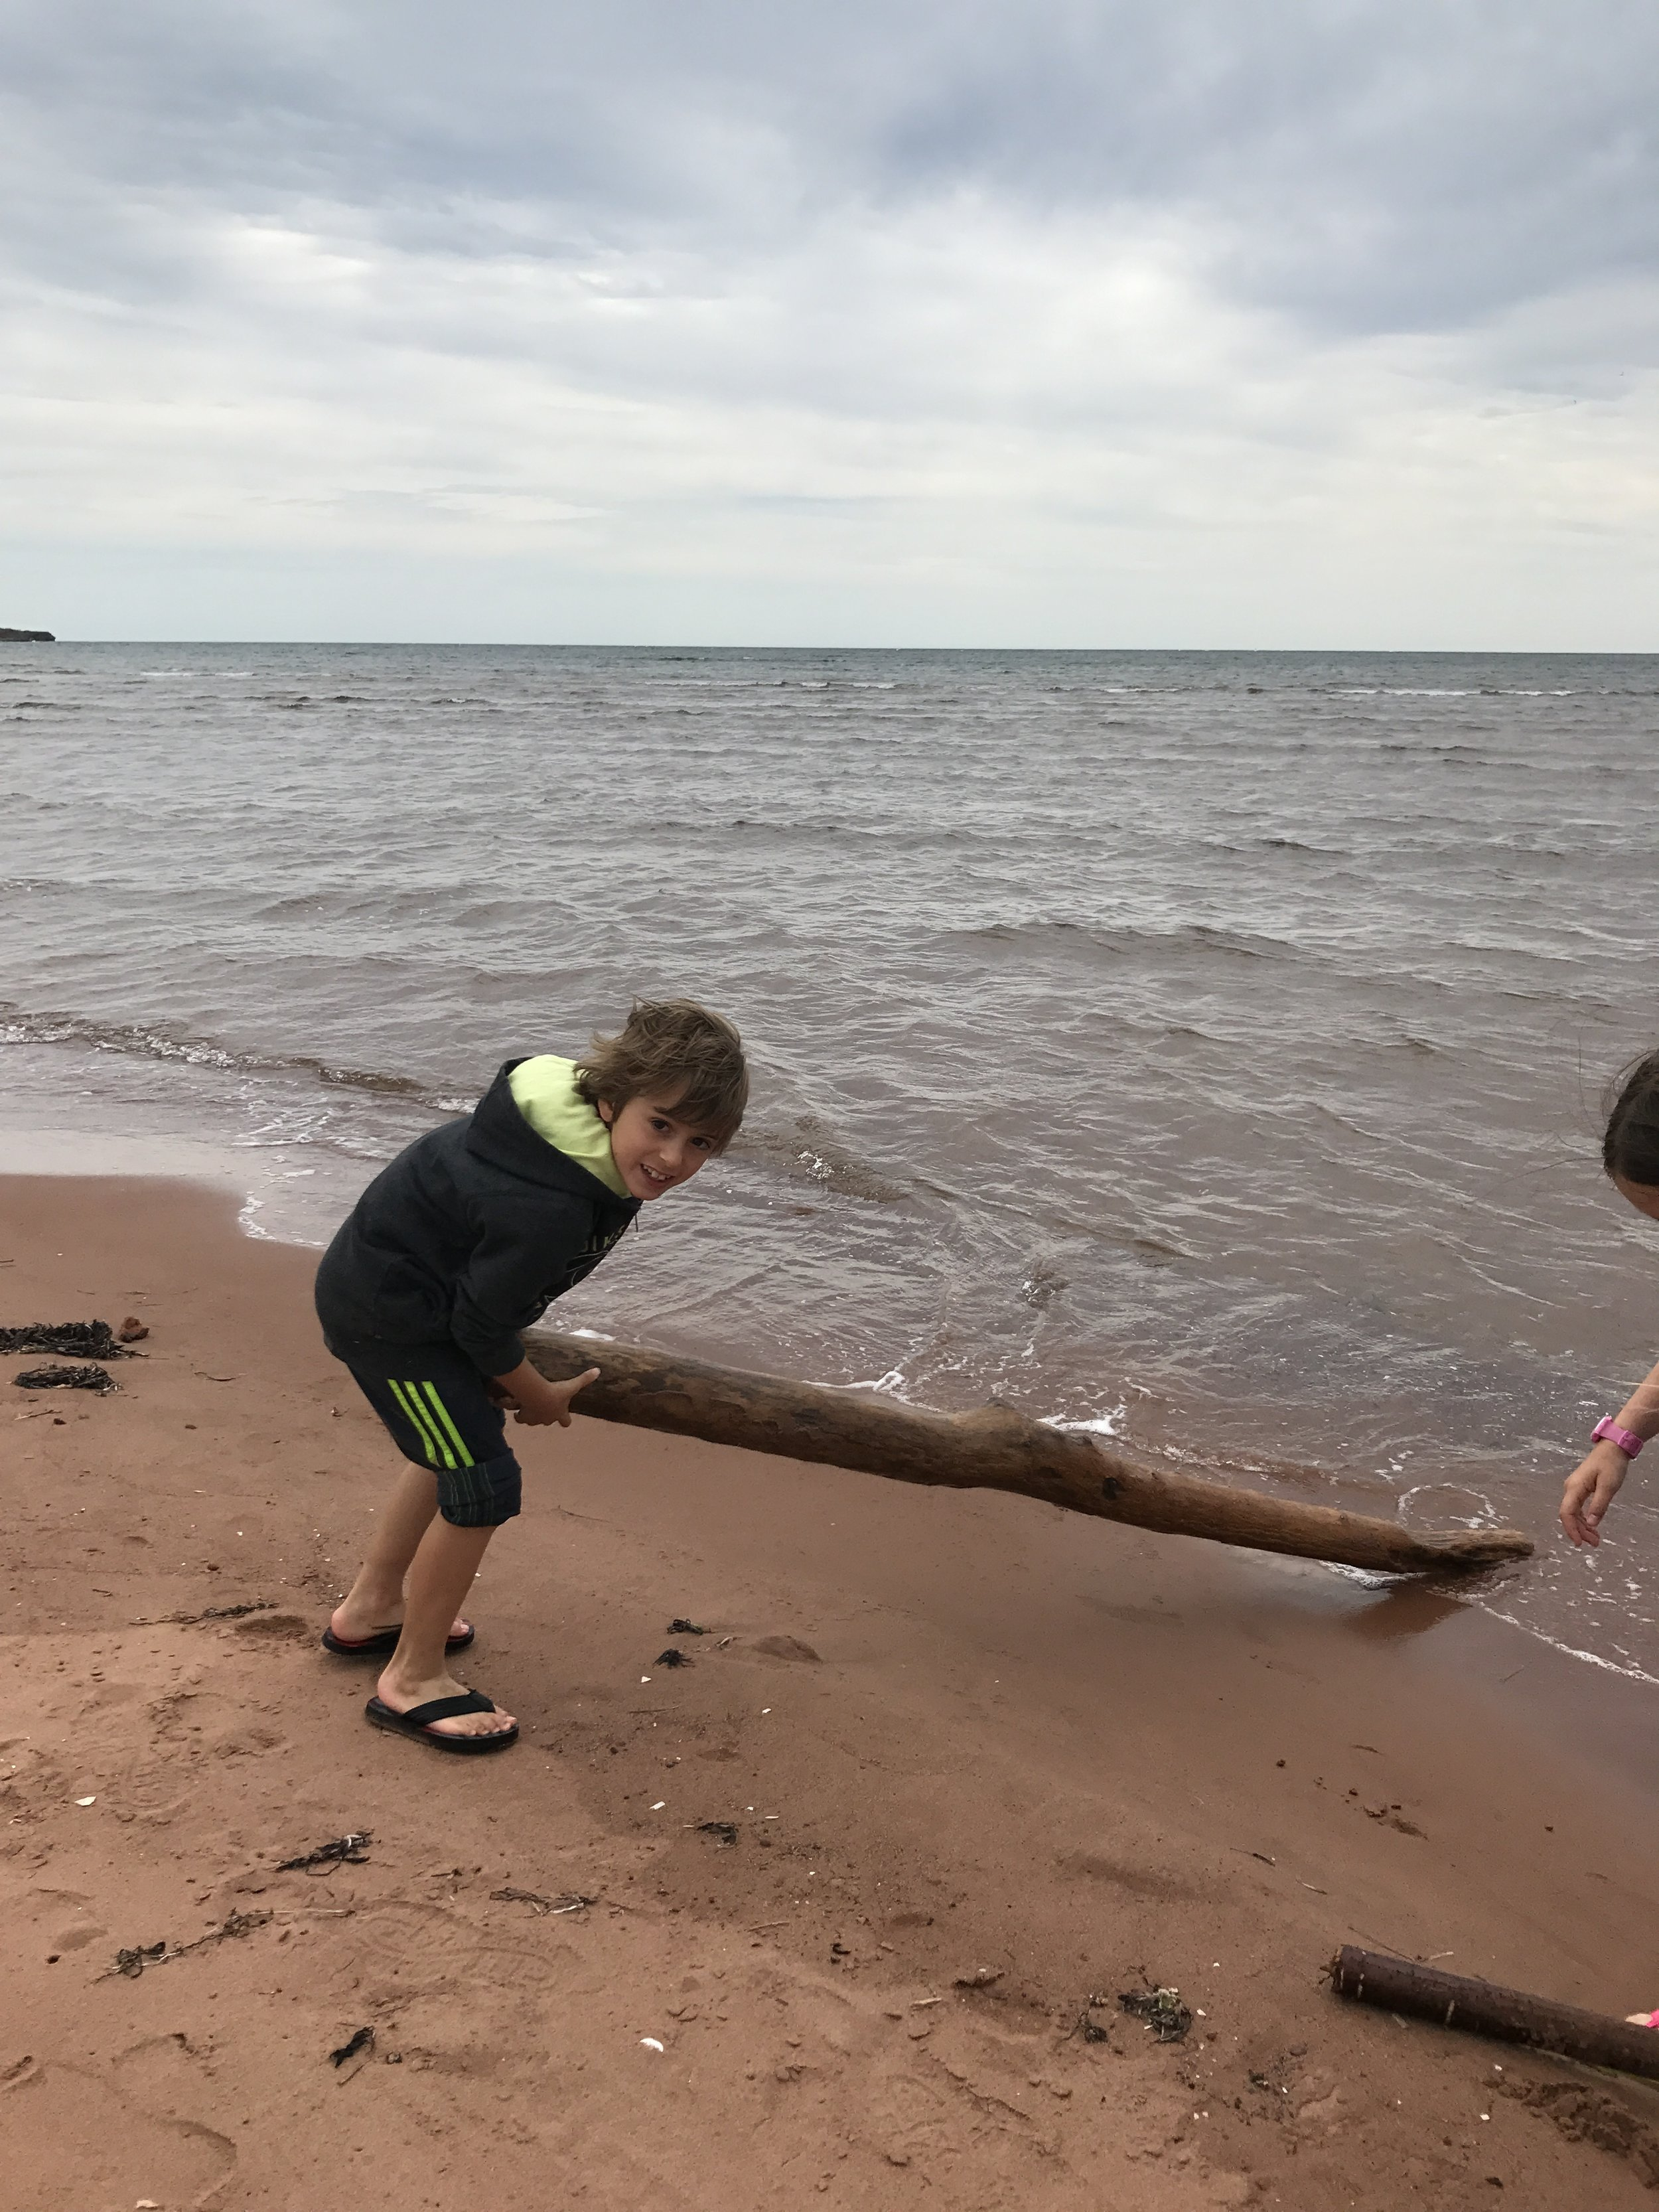 Boys will be boys...trying to float sticks, LOL!